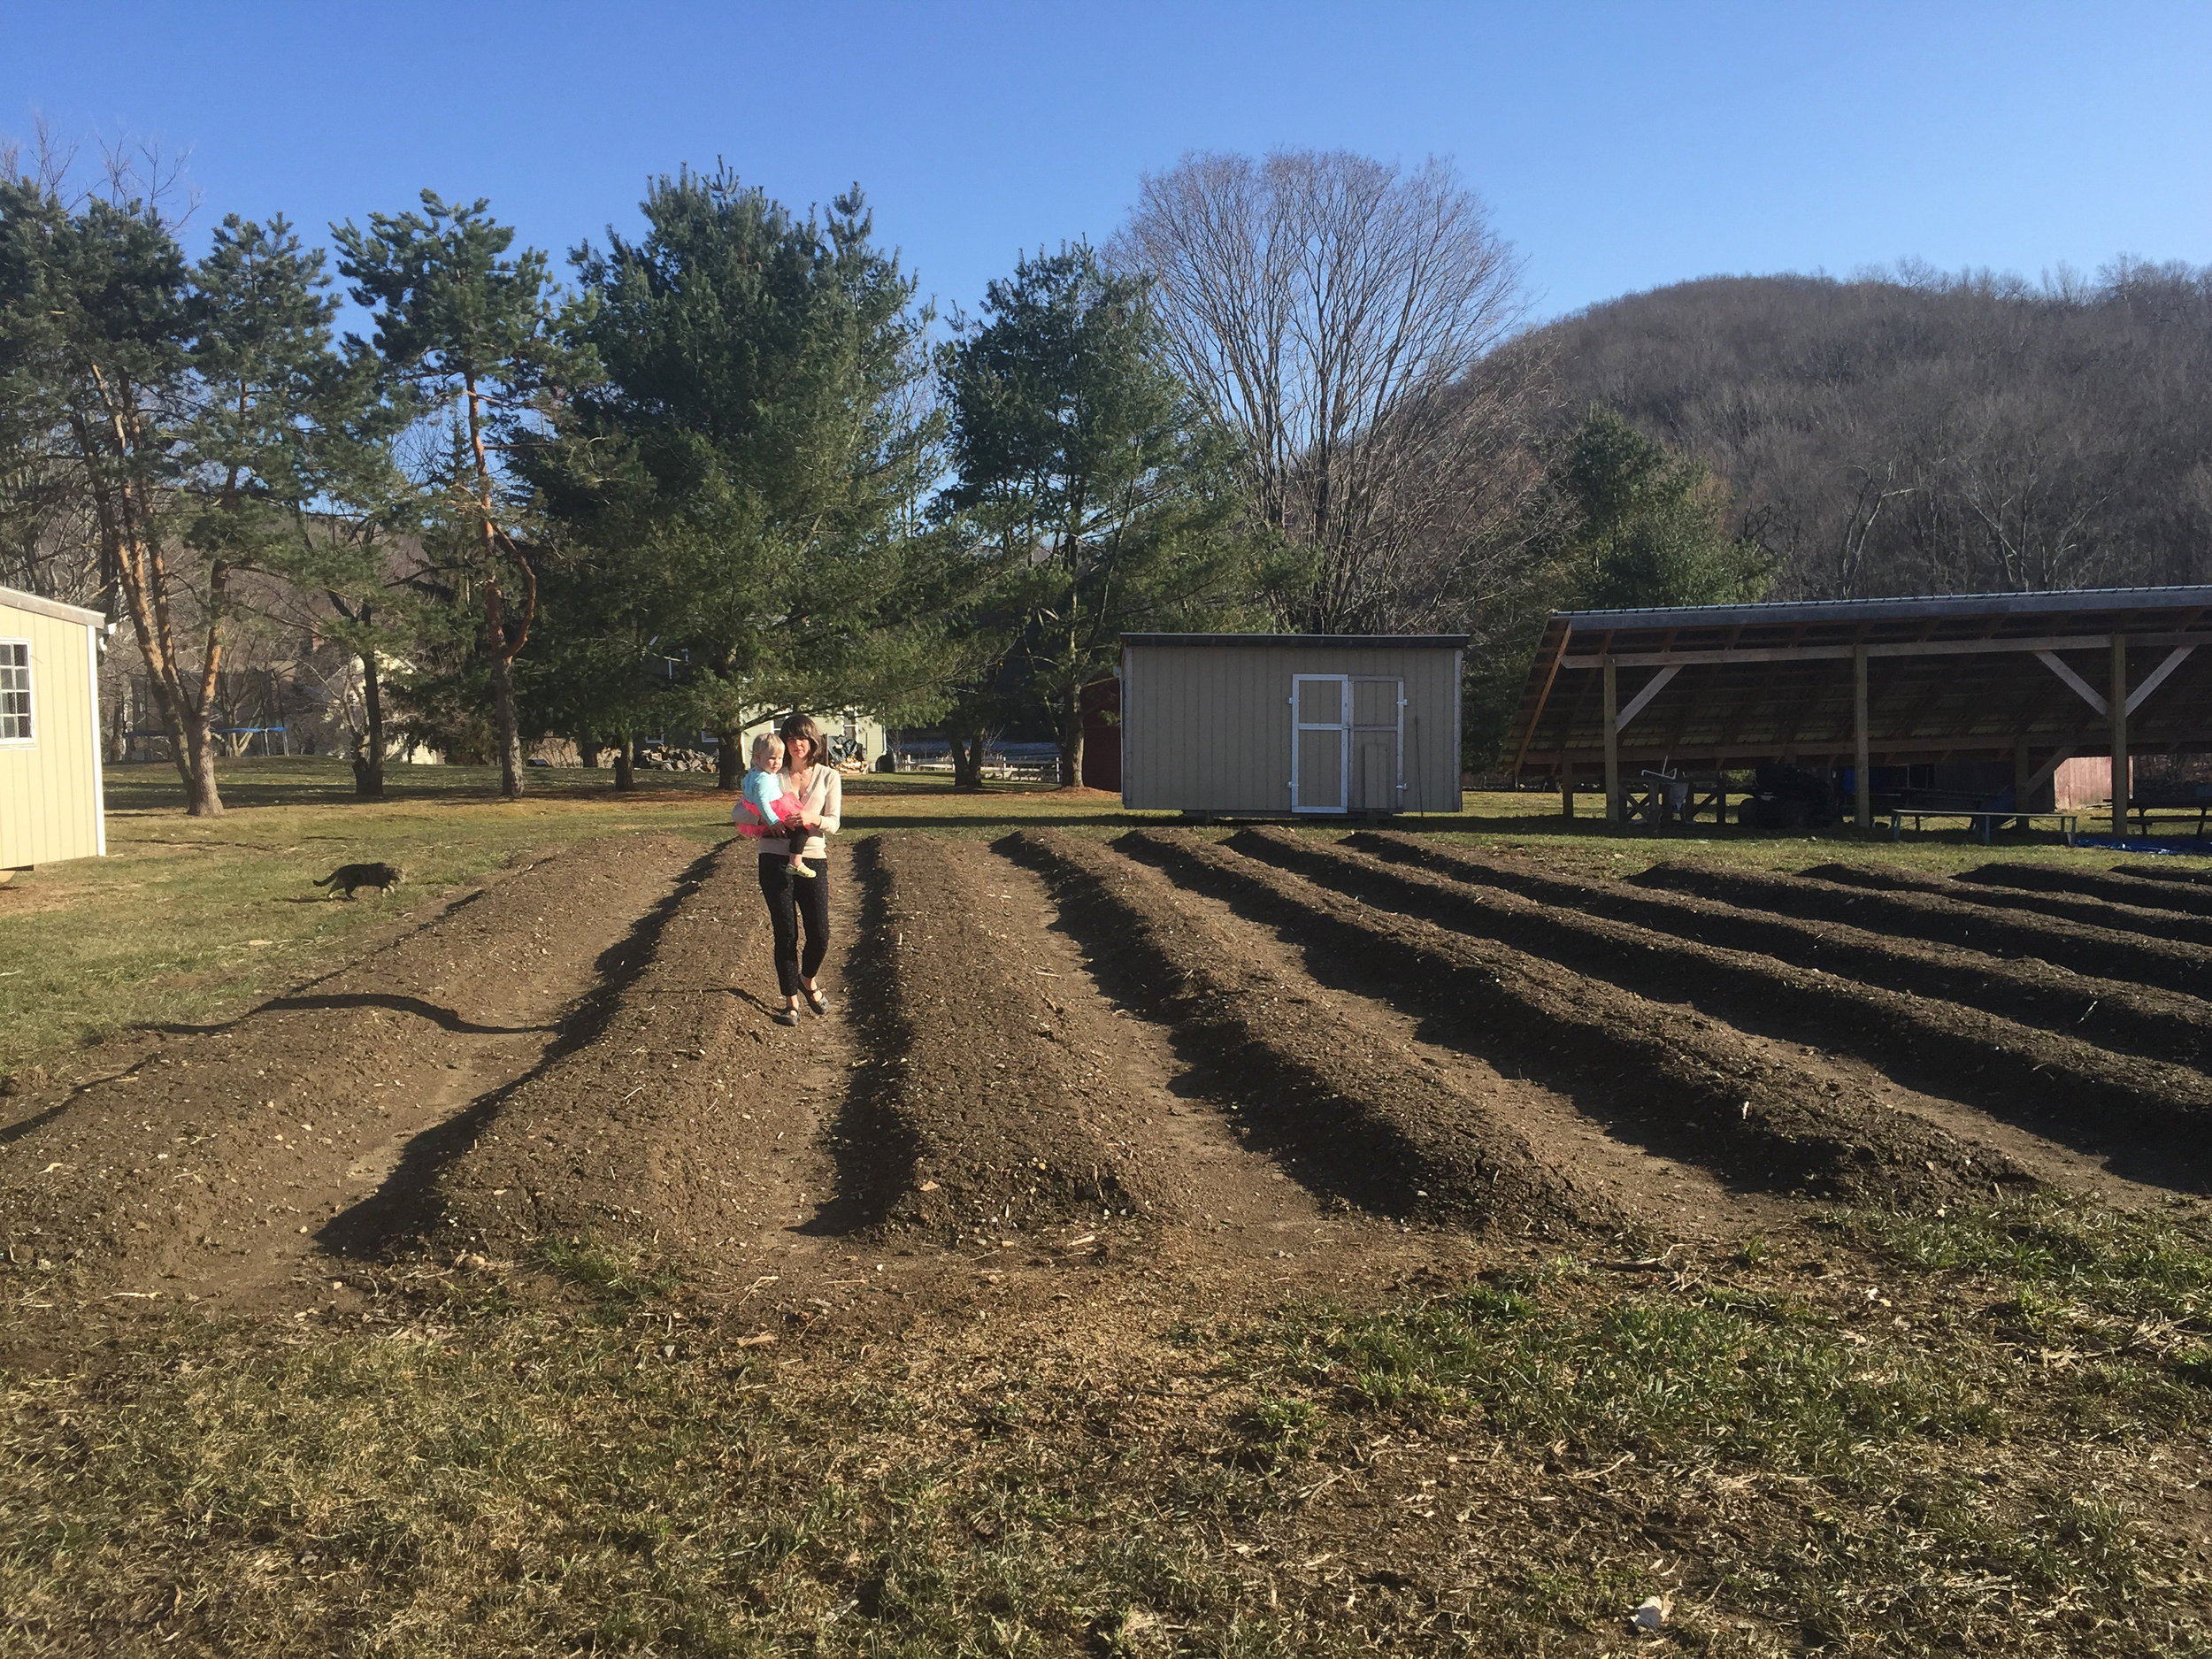 One of our projects on farm was building garden beds.